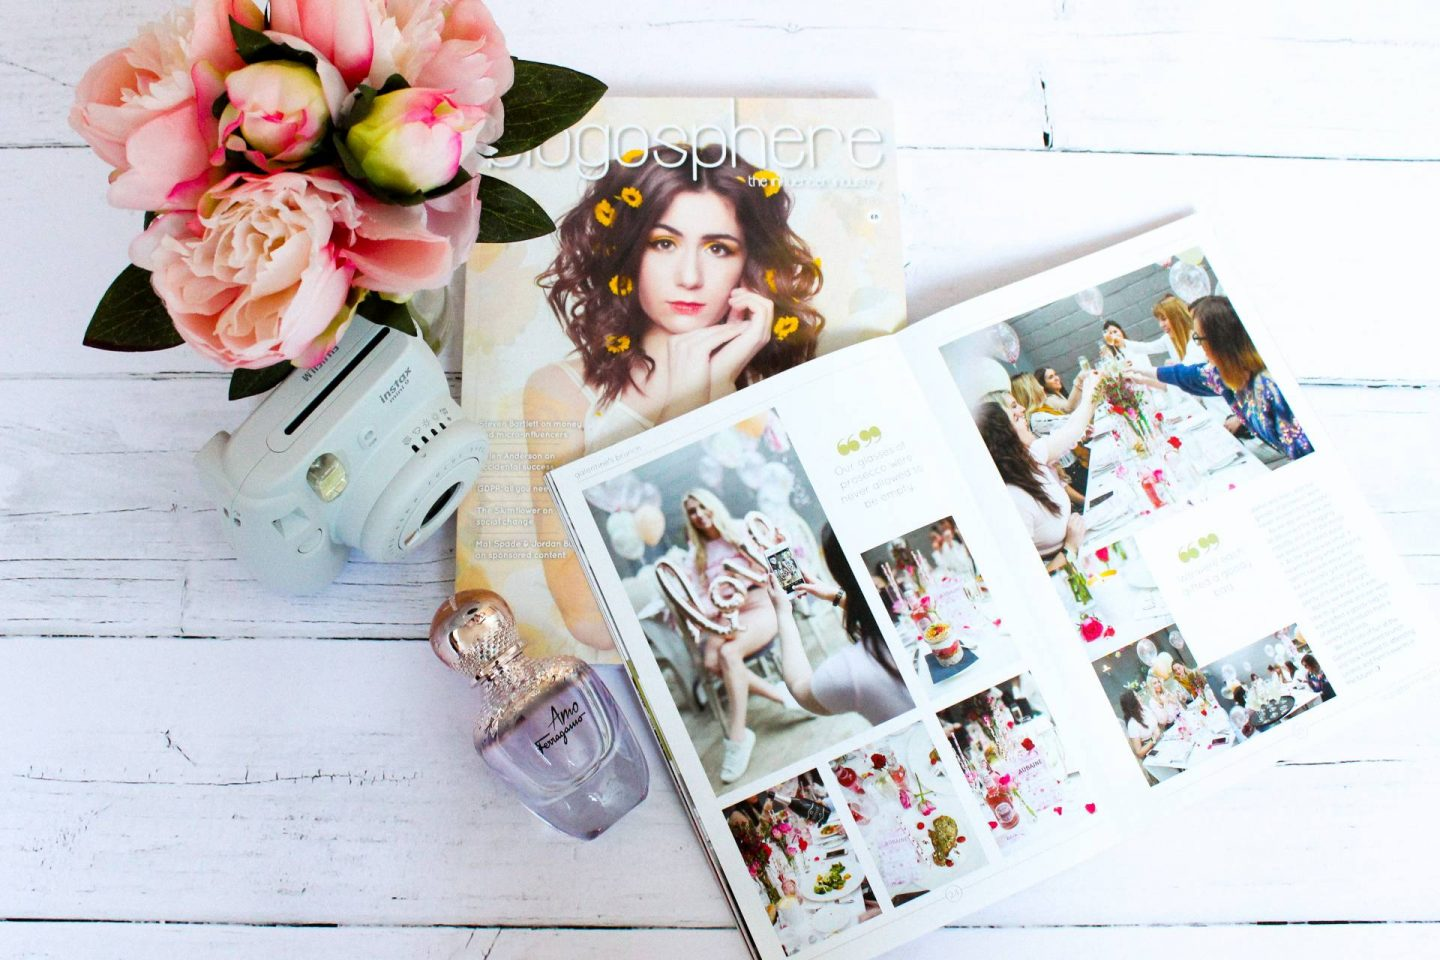 Blogosphere issue 17 events supplement